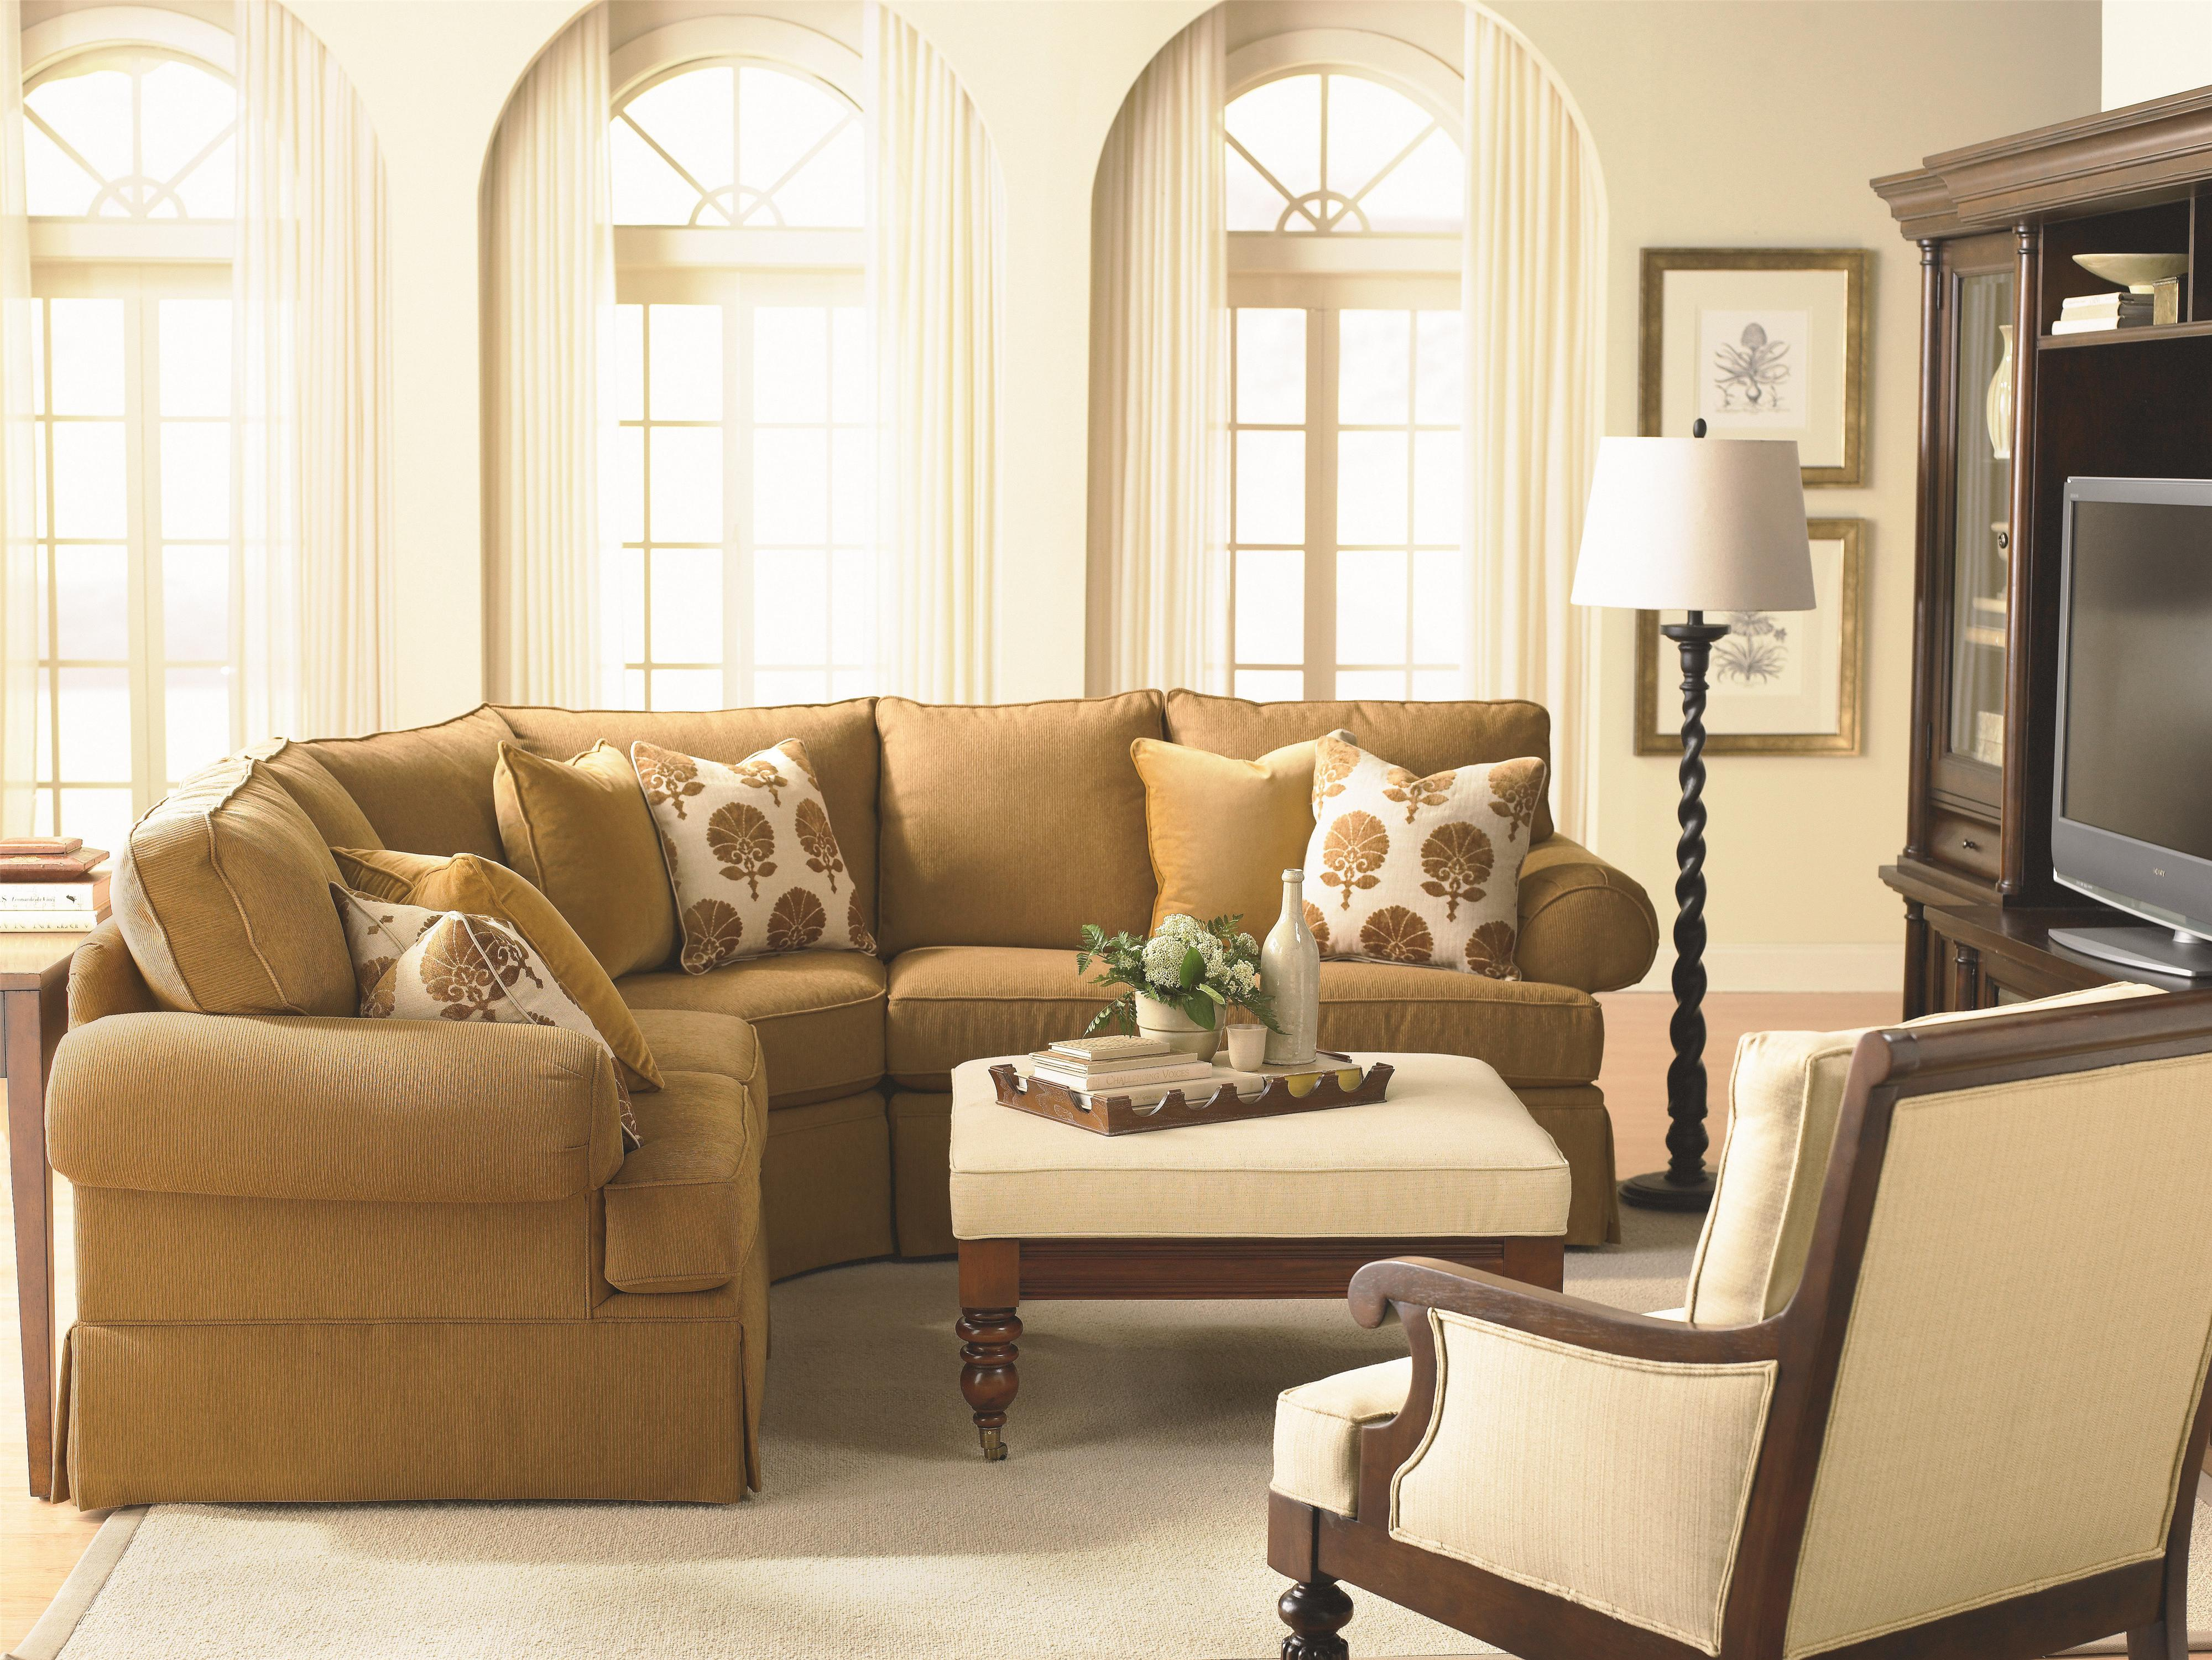 b Customizable b 2 pc Sectional with LAF Chaise Panel Arms and